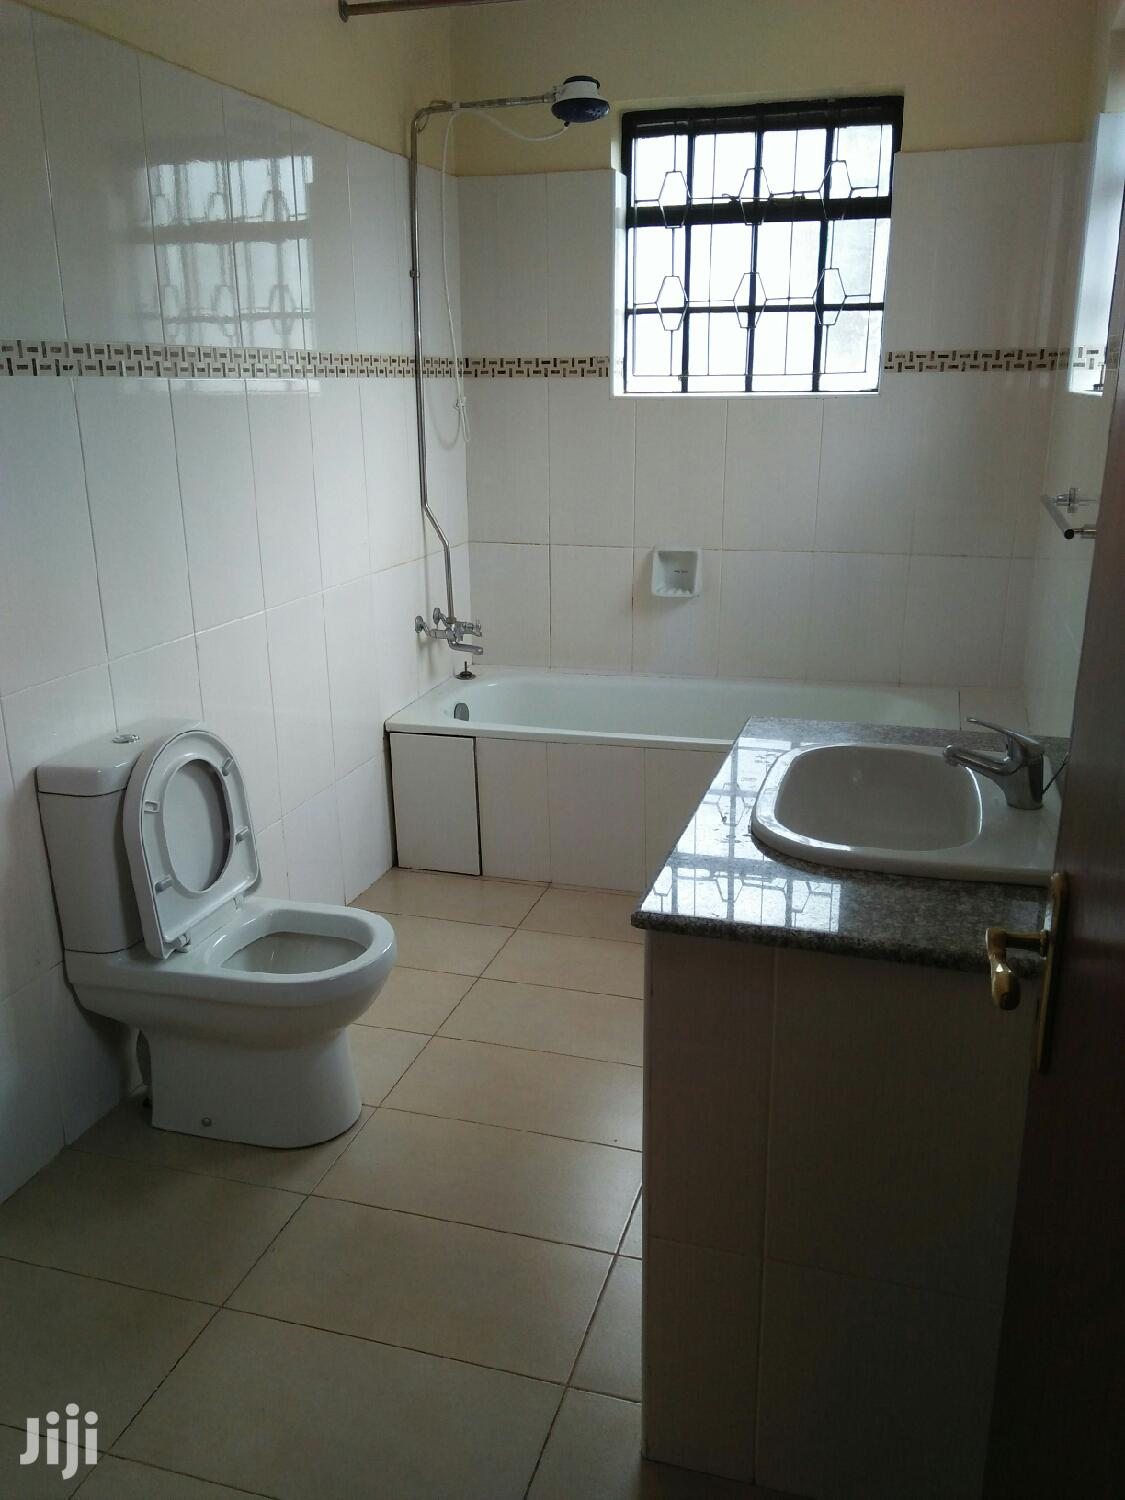 3bedroom Furnished In Lavington. | Houses & Apartments For Rent for sale in Lavington, Nairobi, Kenya